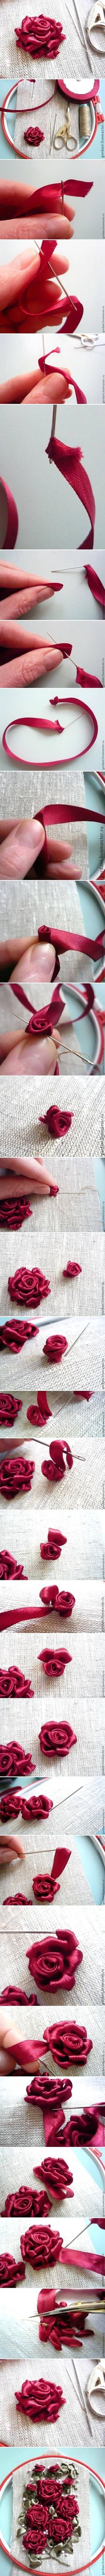 DIY Niza Ribbon Rose hermosa Proyectos DIY | UsefulDIY.com